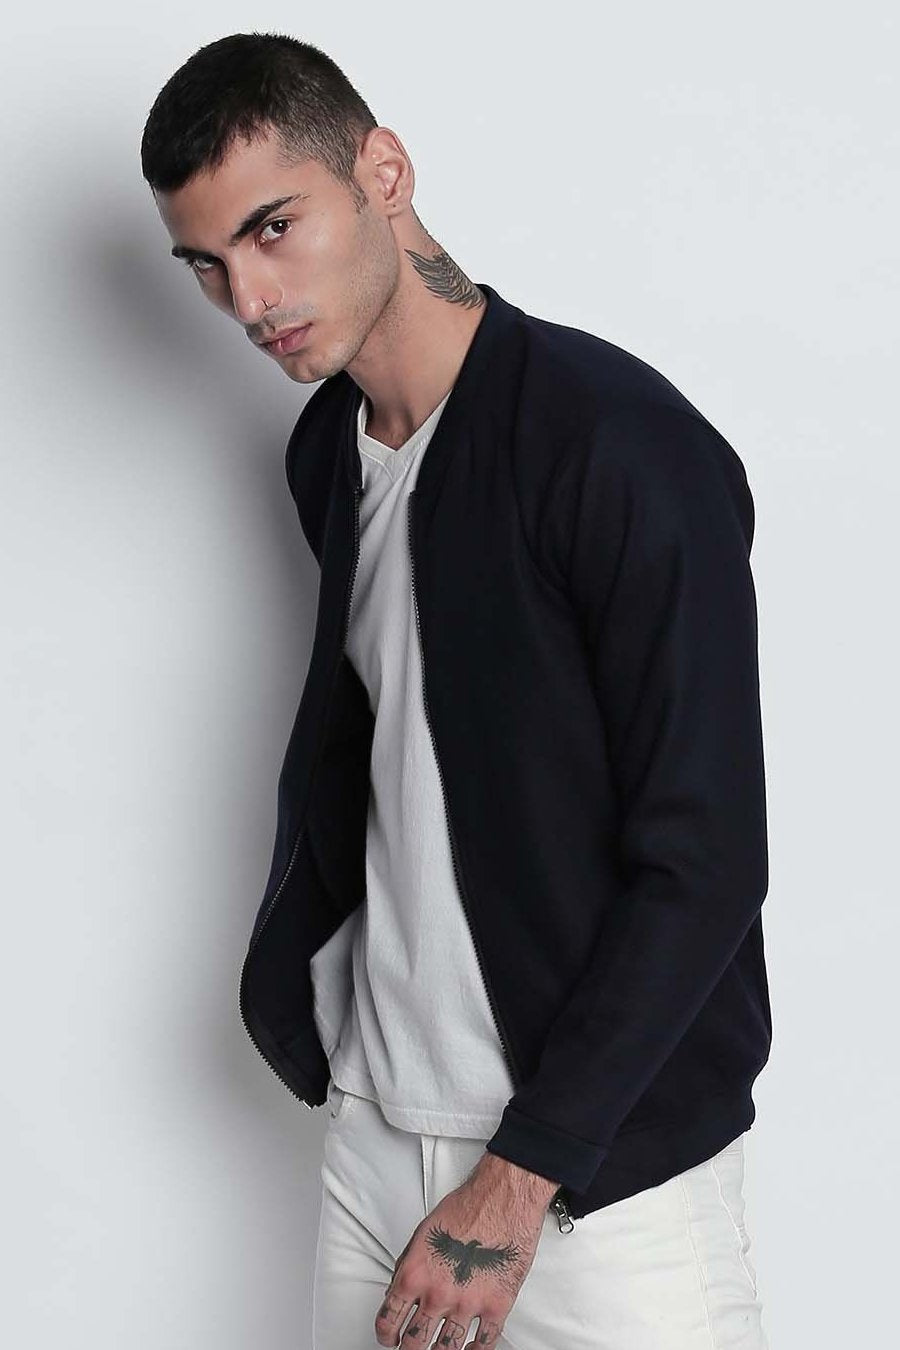 Hemsters Jacket M Navy Blue Drill Bomber Jacket